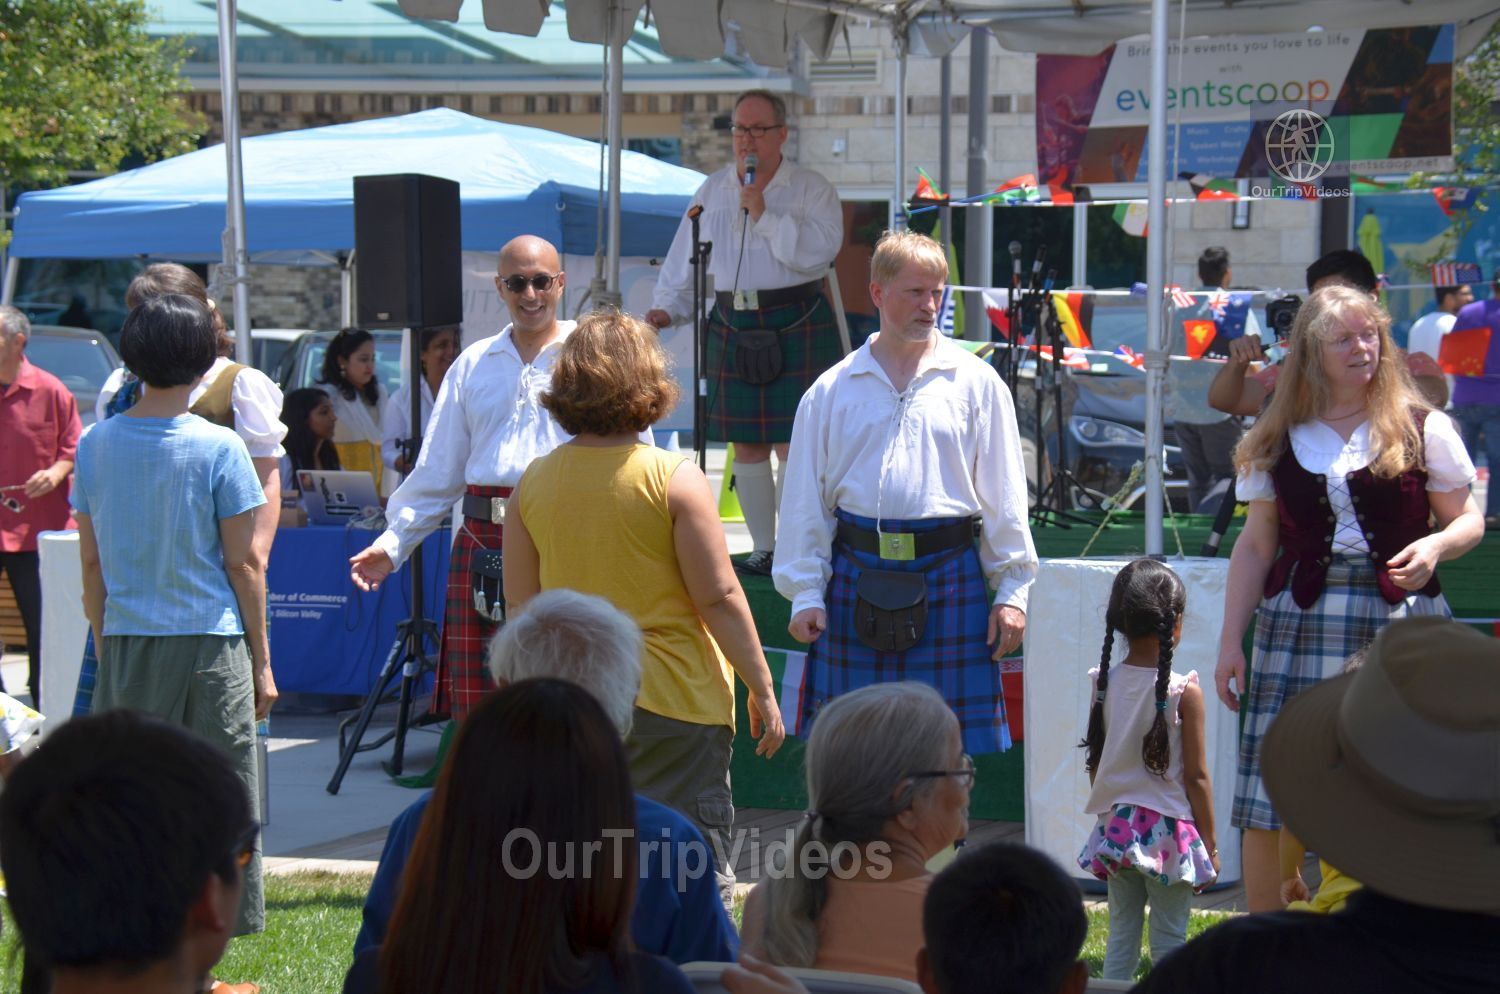 Carnival of Cultures, Cupertino, CA, USA - Picture 20 of 25